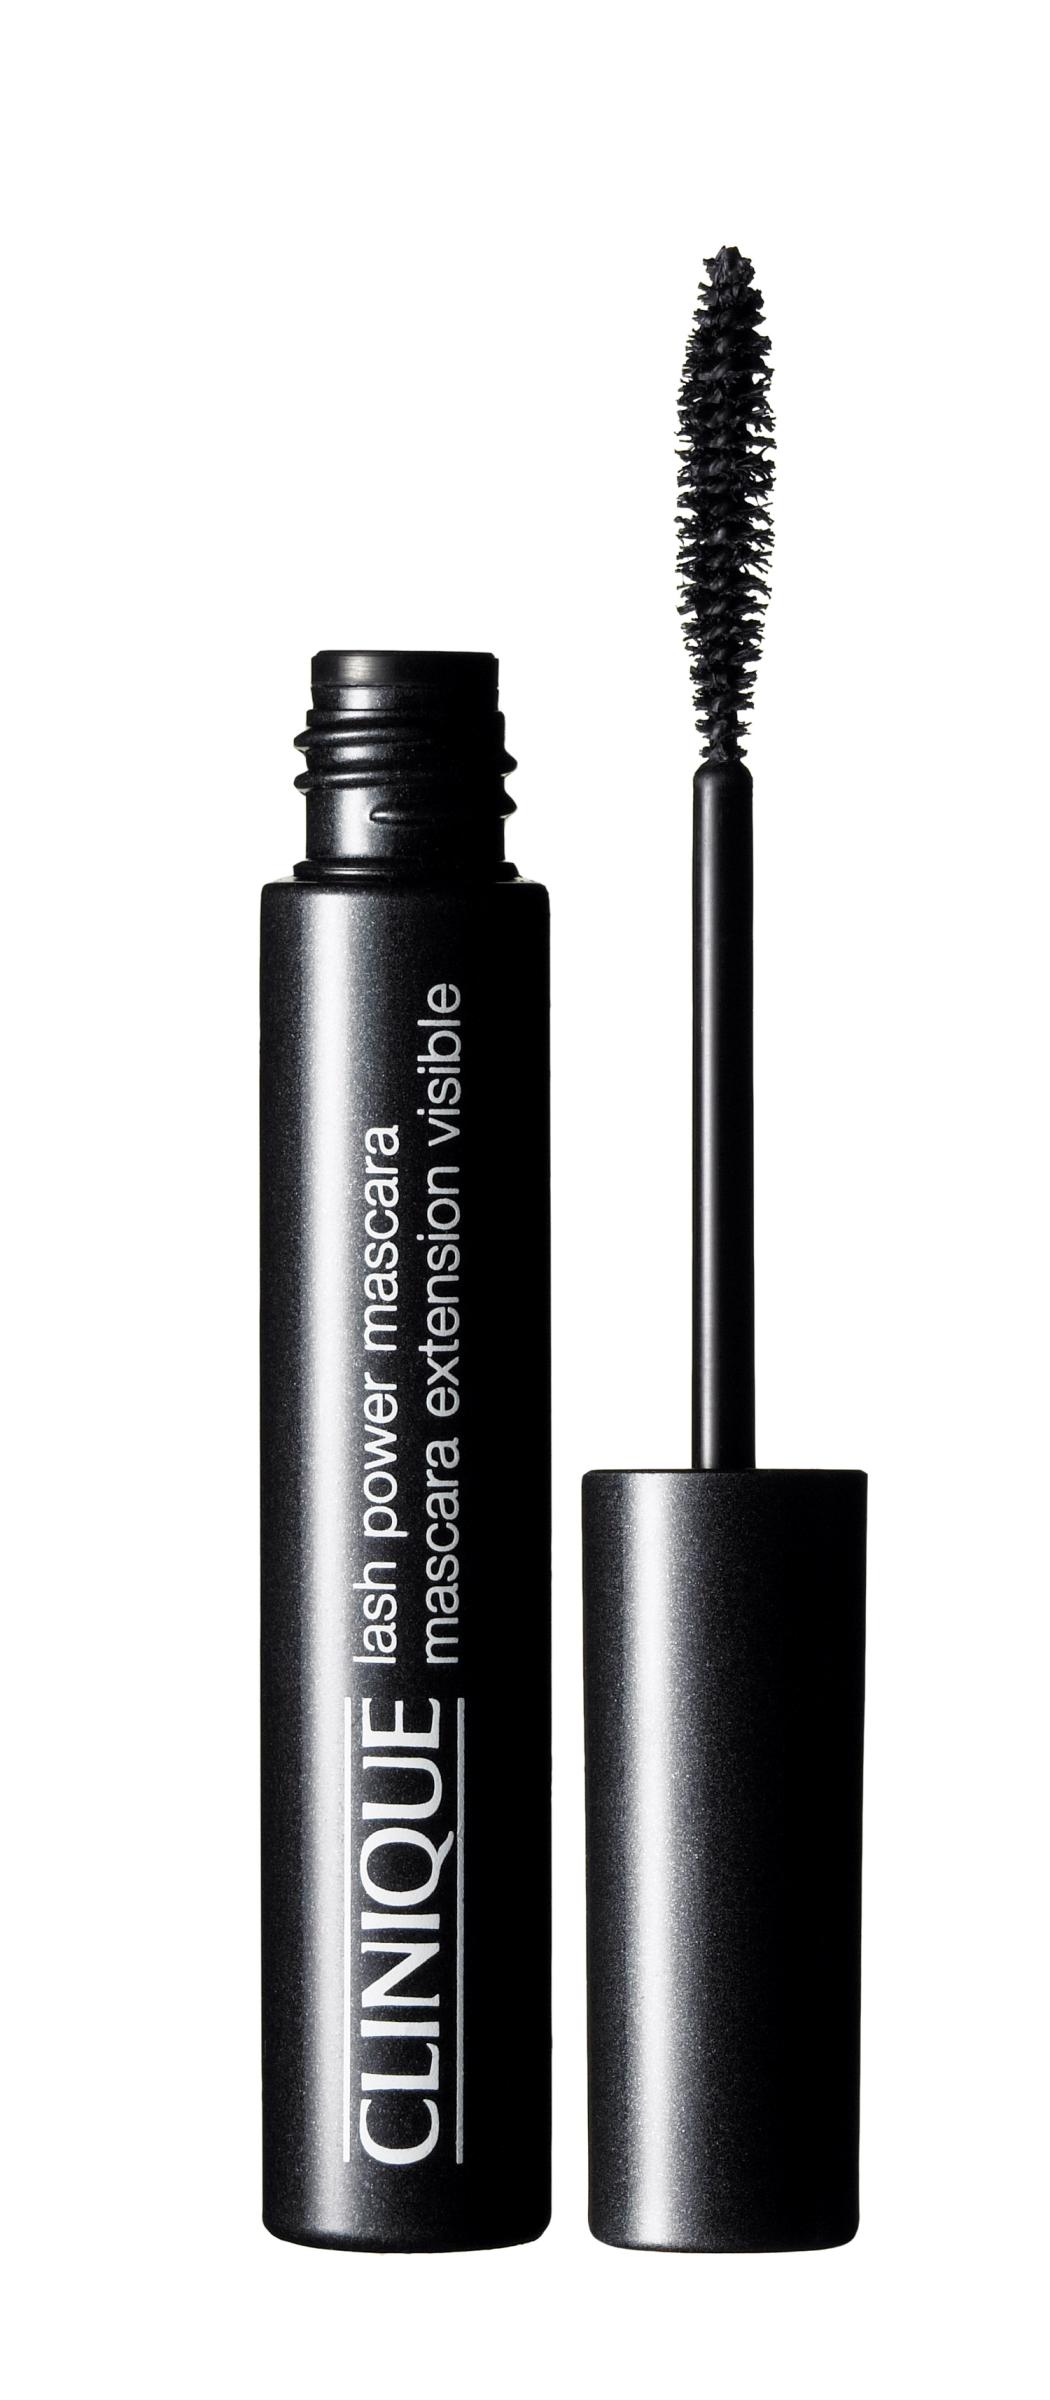 CLINIQUE_Lash_Power_Mascara_S